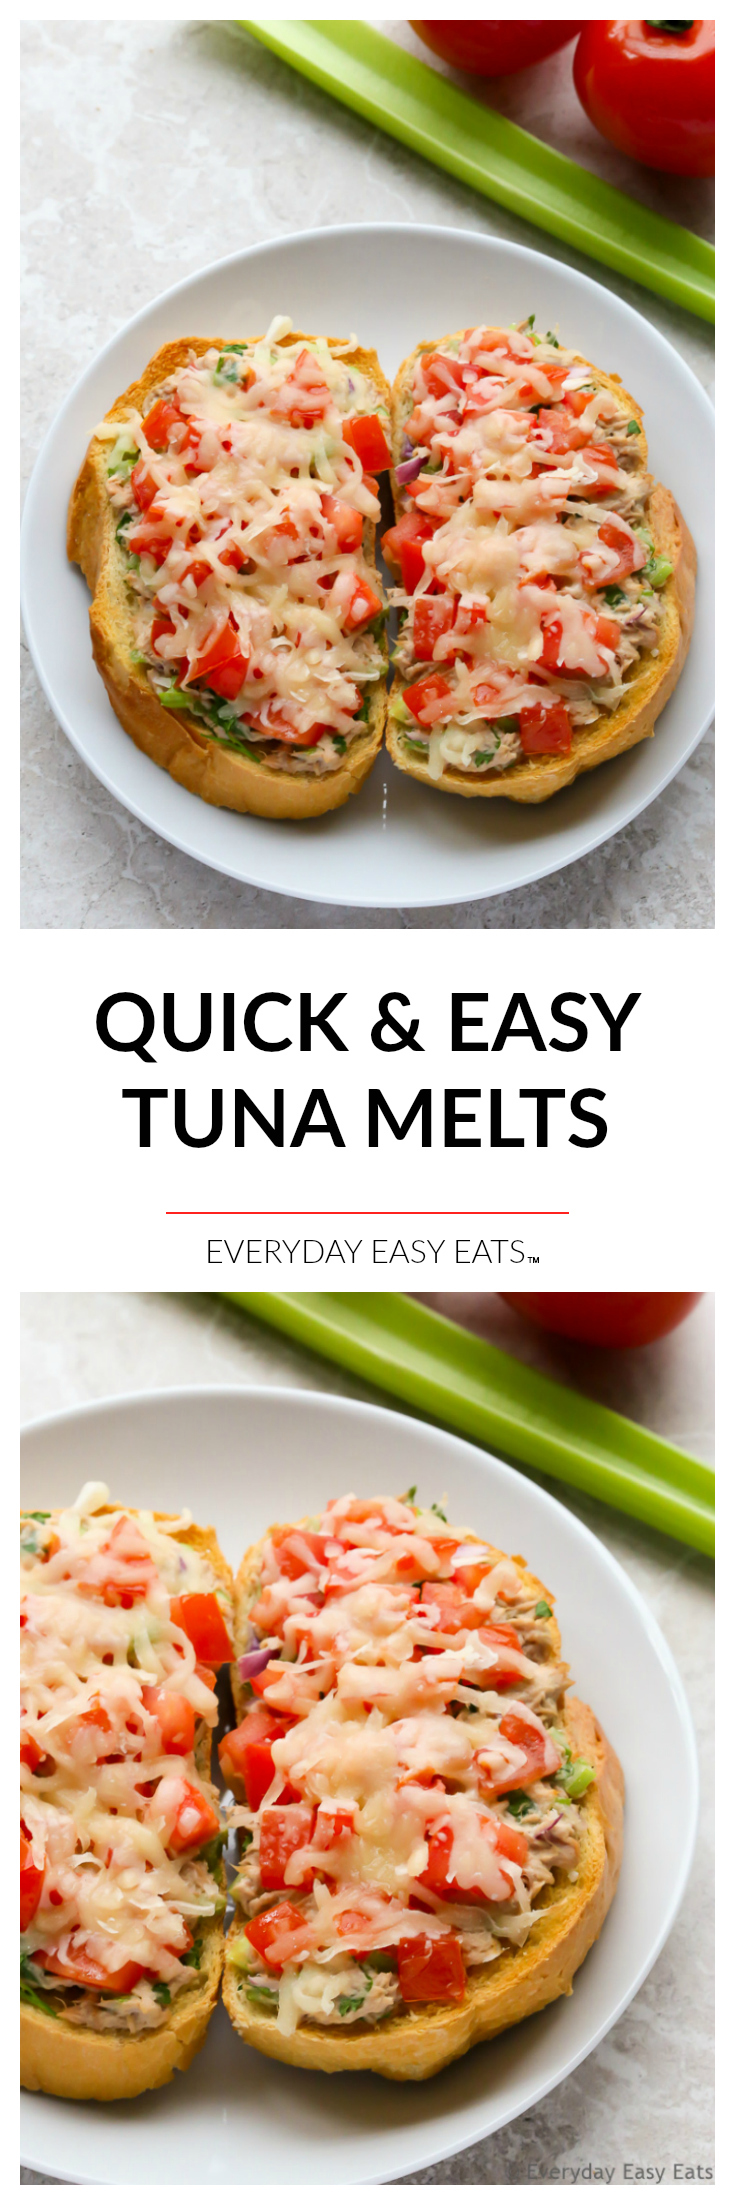 Quick Tuna Melts - 15 minutes are all you need to make these tasty, comforting sandwiches. | EverydayEasyEats.com